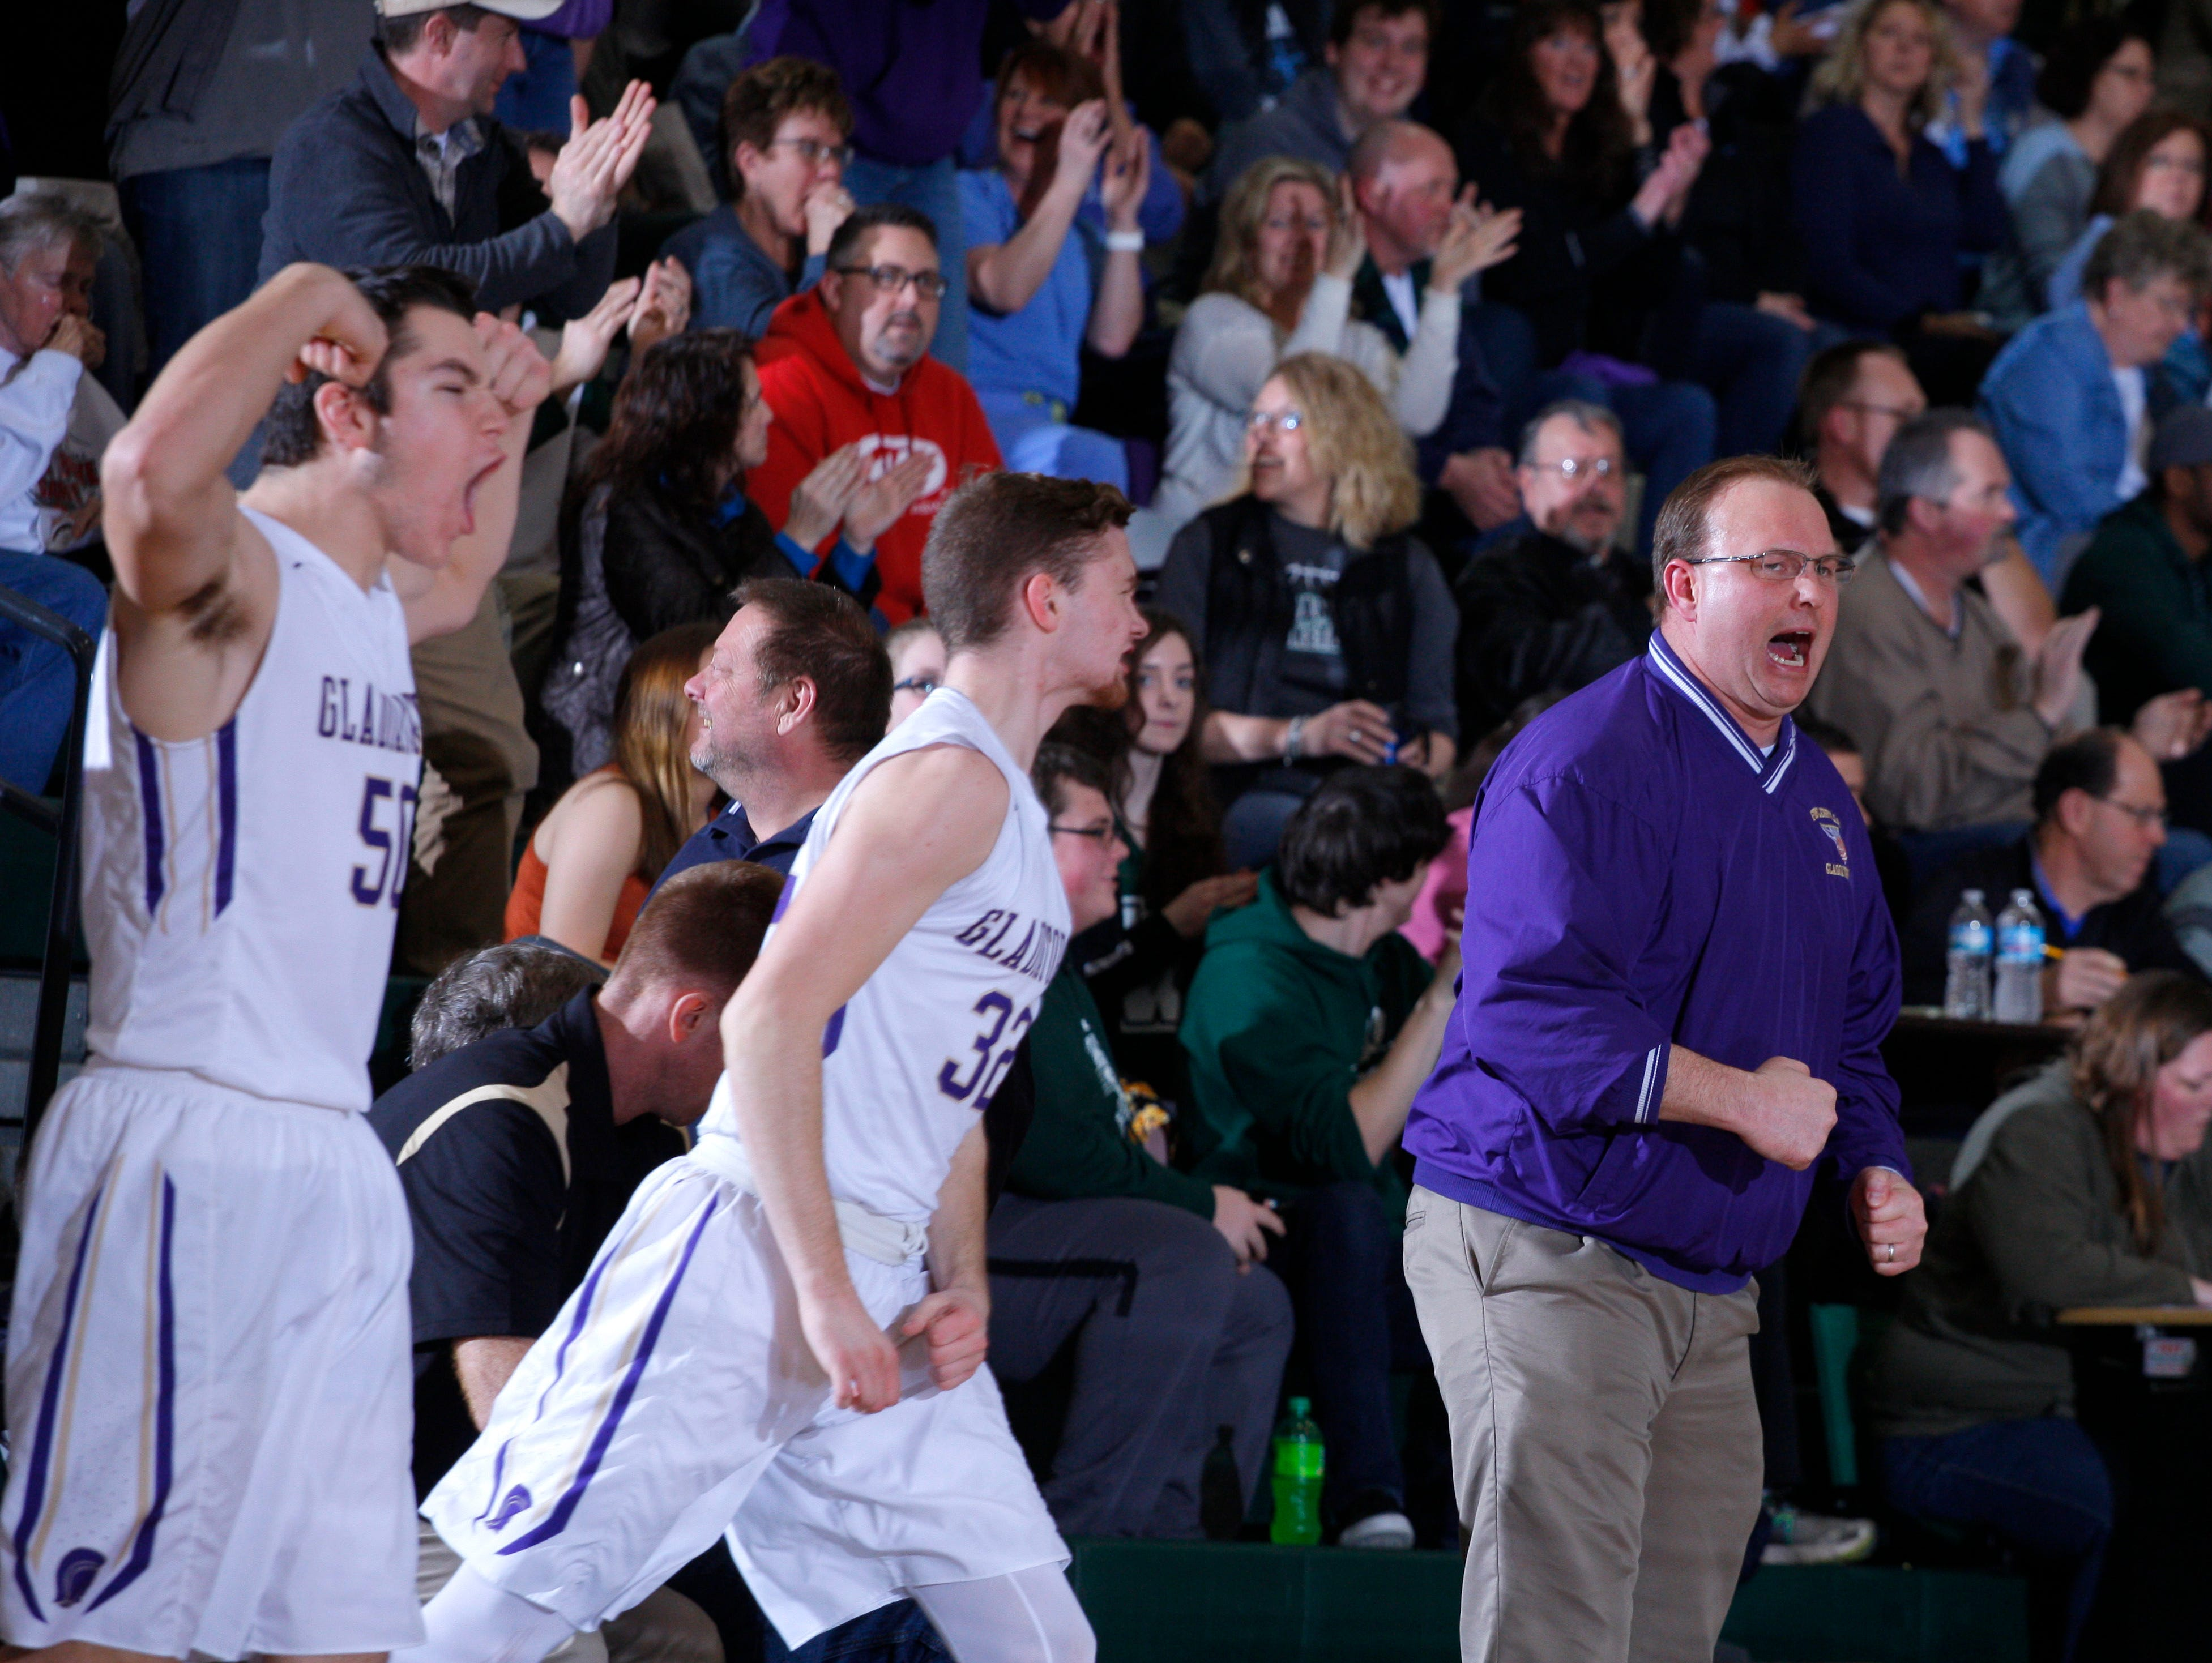 Fowlerville coach Fred Hackett, right, Mitchell Bishop, left, and Caden Collins celebrate during their district game against Lansing Catholic Monday, March 6, 2017, in East Lansing, Mich. Fowlerville won 66-52.